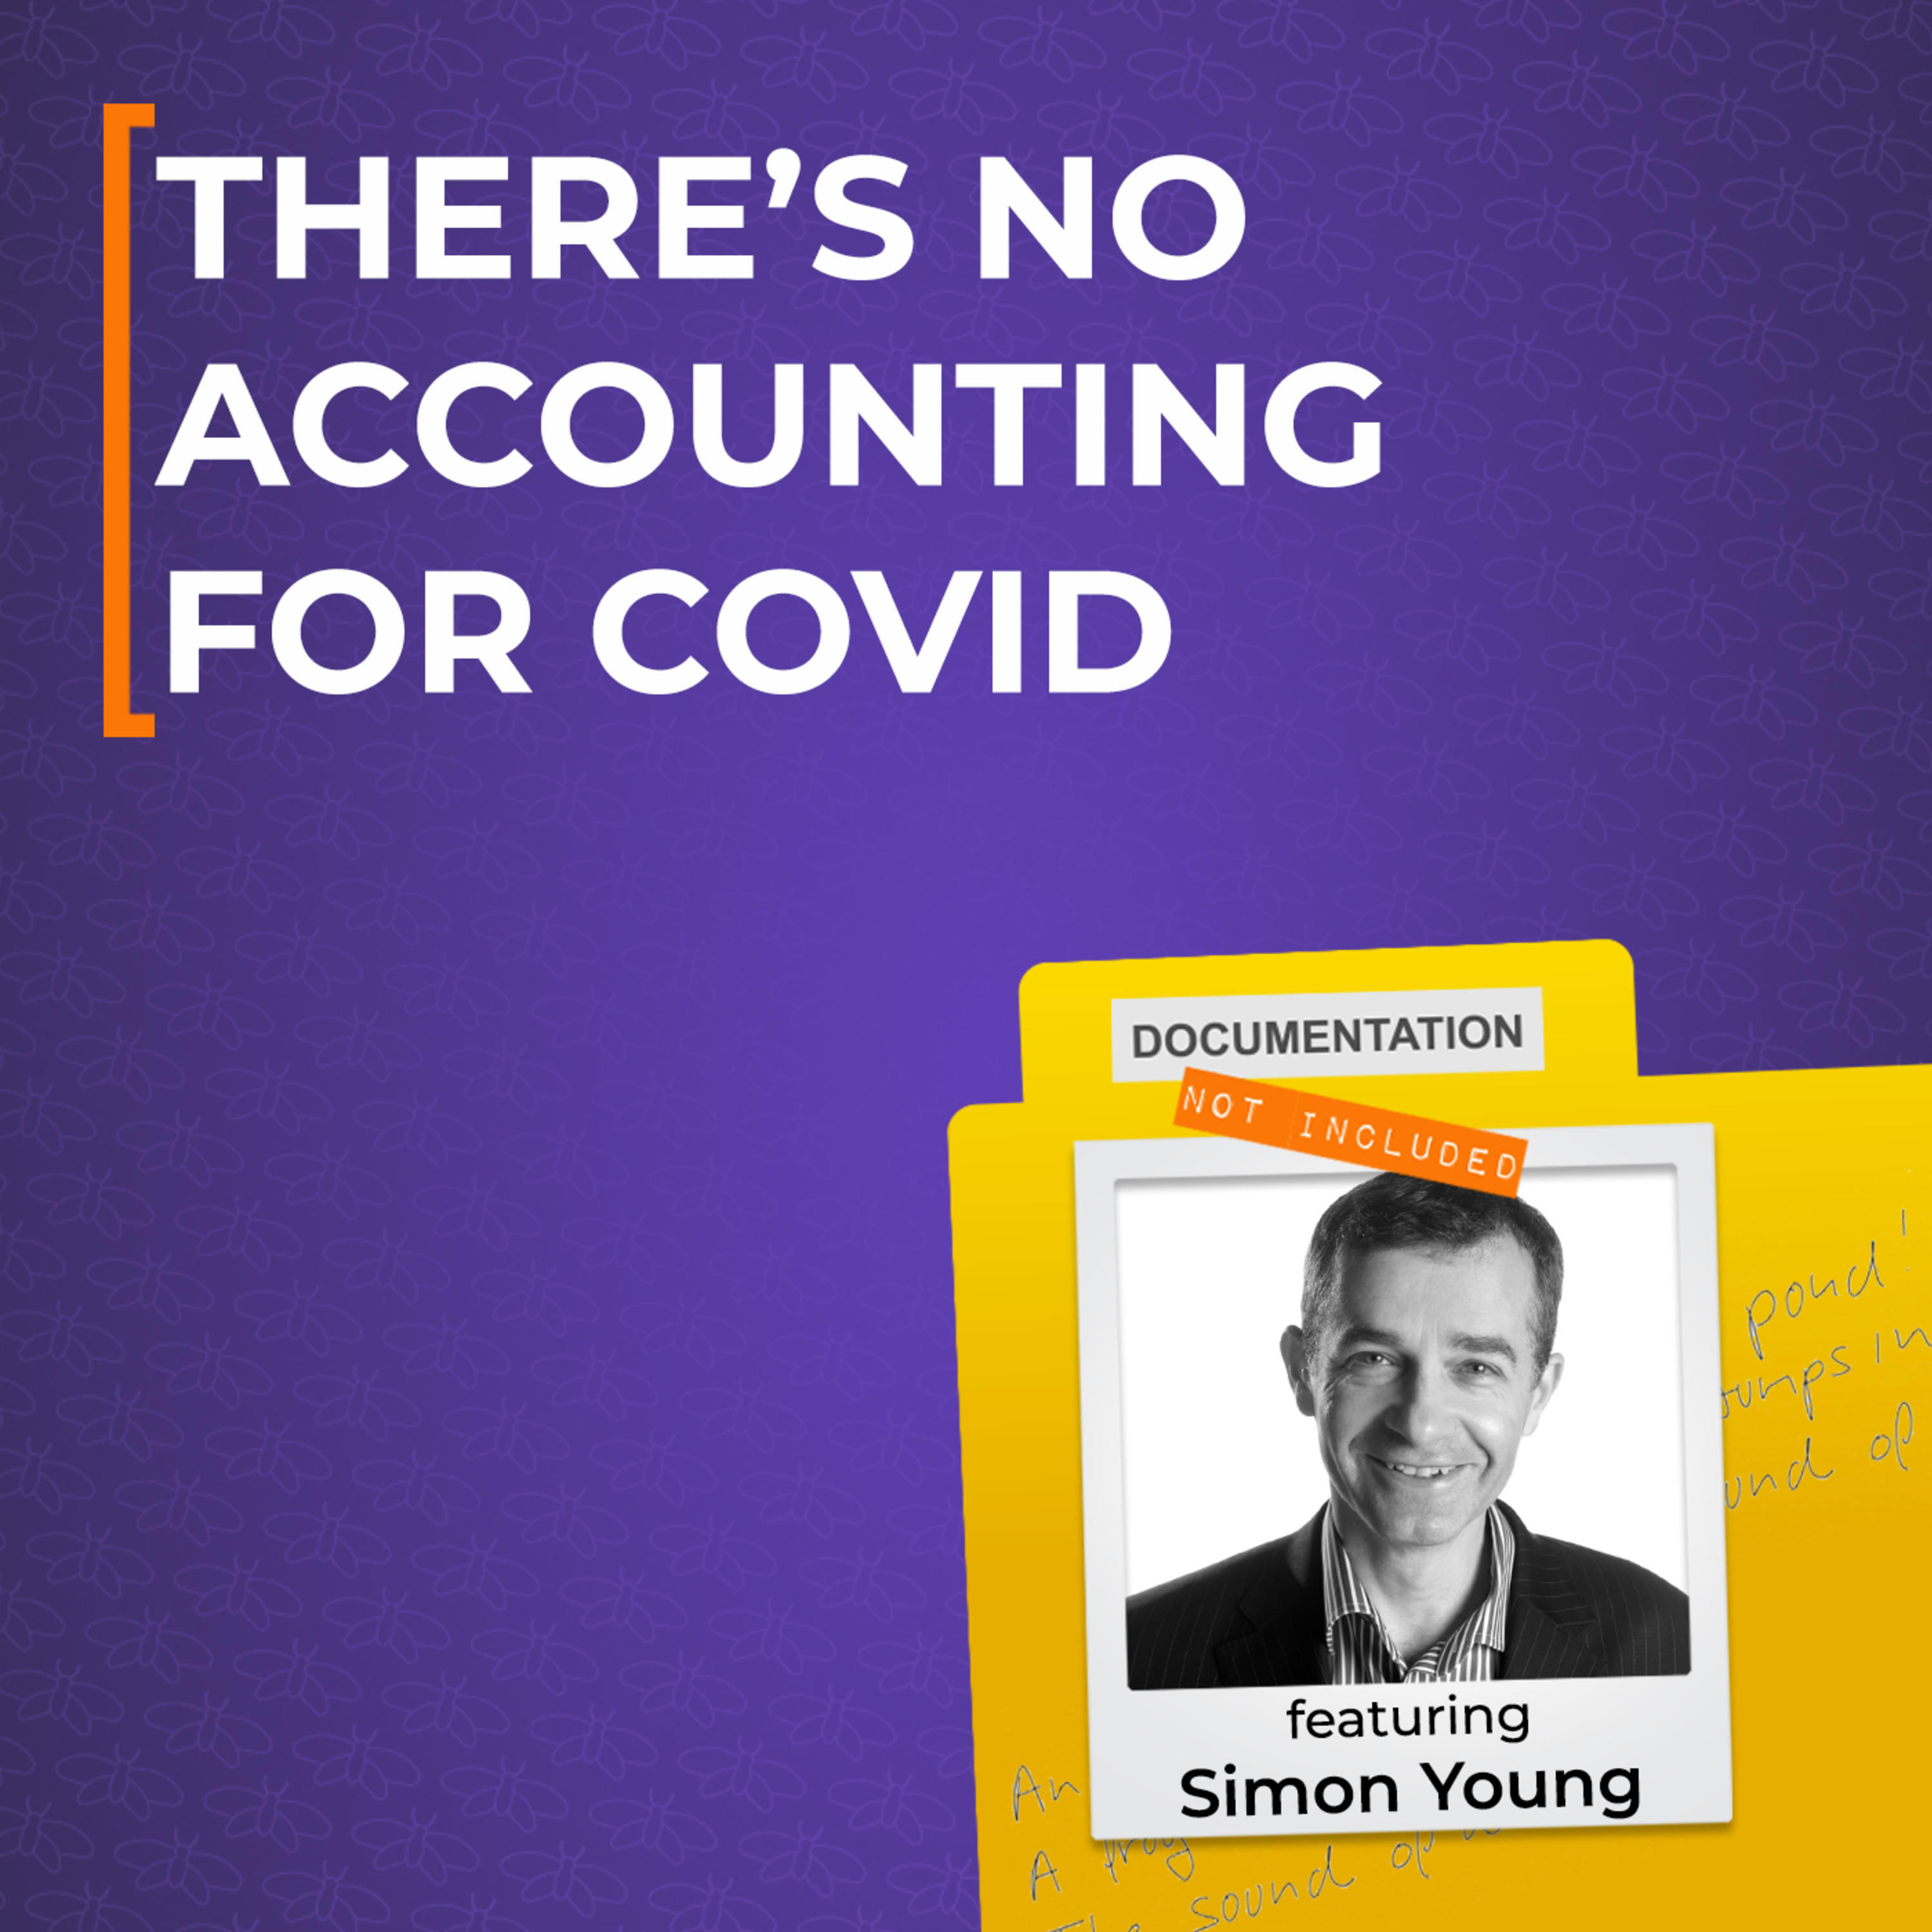 There's No Accounting for COVID